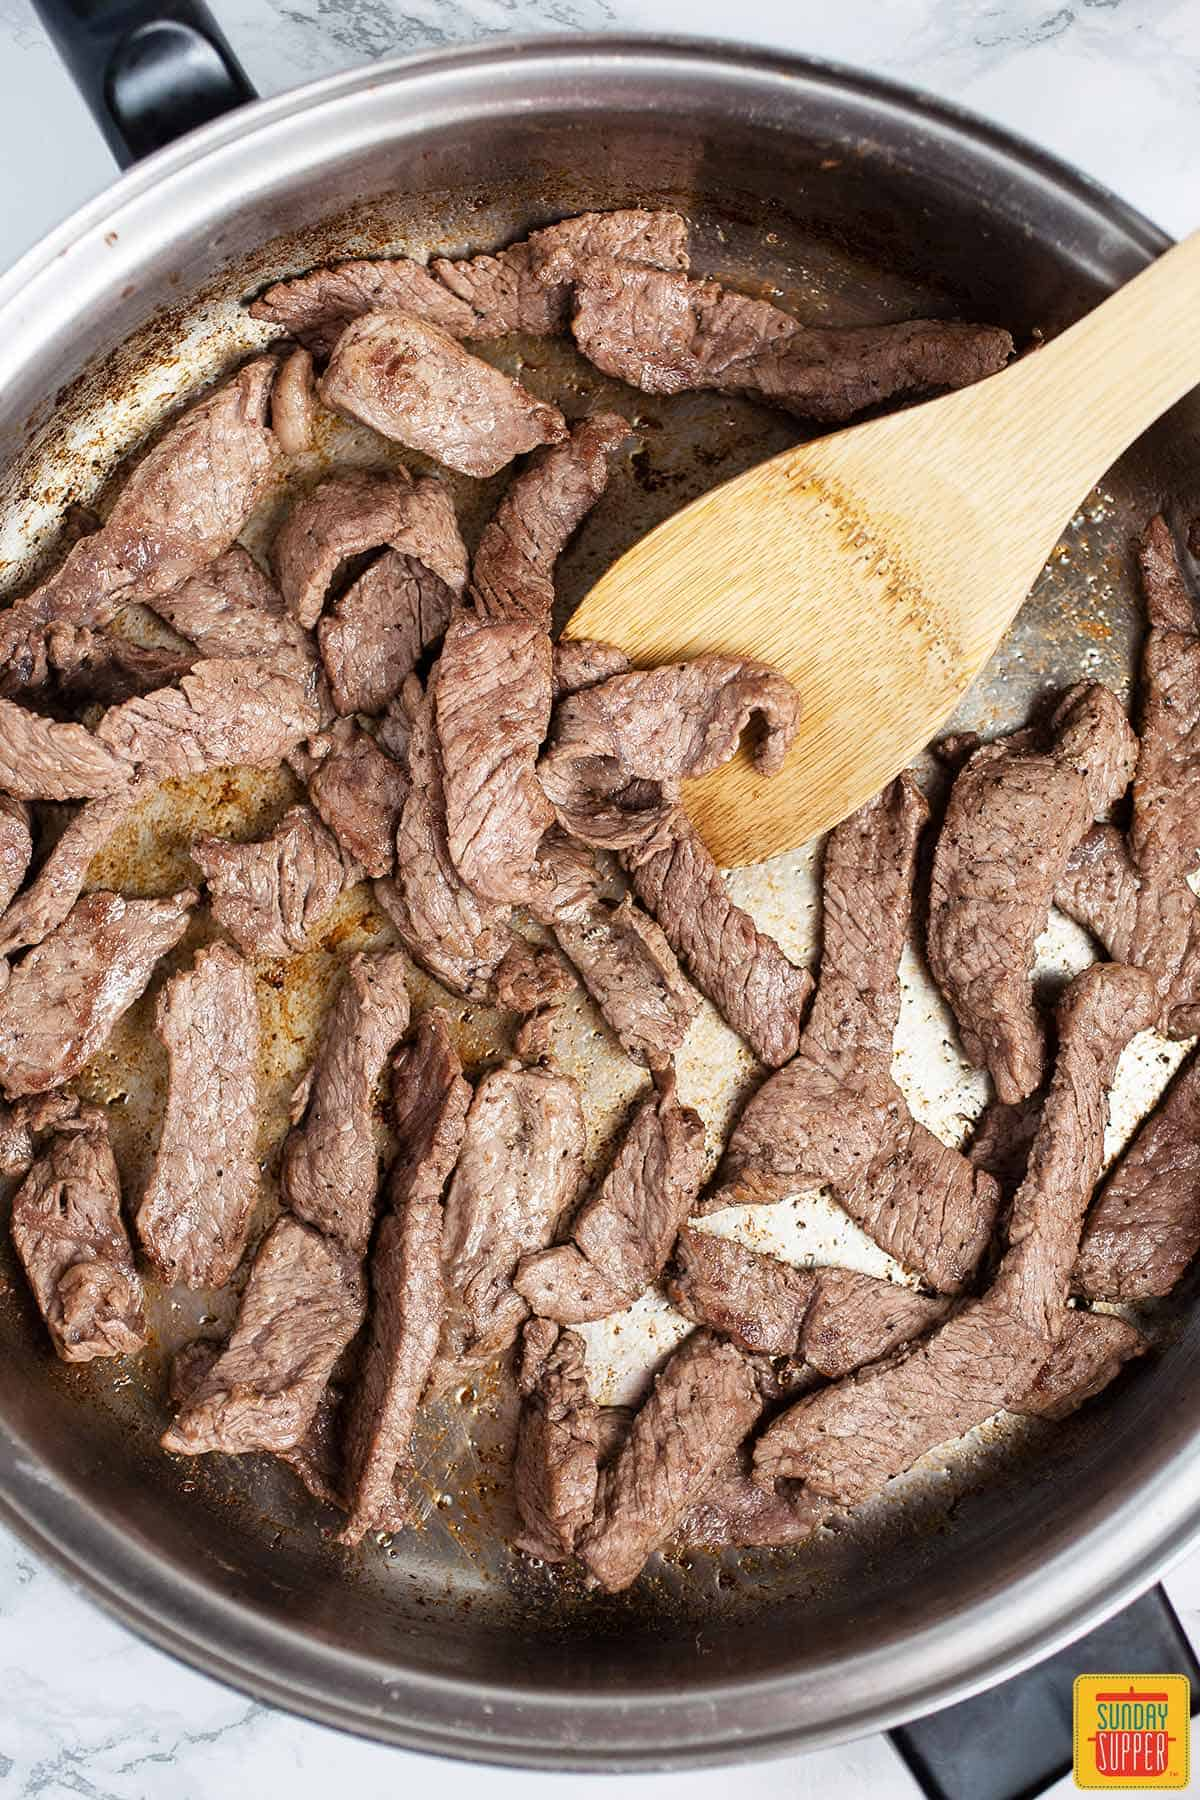 Searing sirloin steak strips for easy  paella recipe with a wooden spoon in a skillet